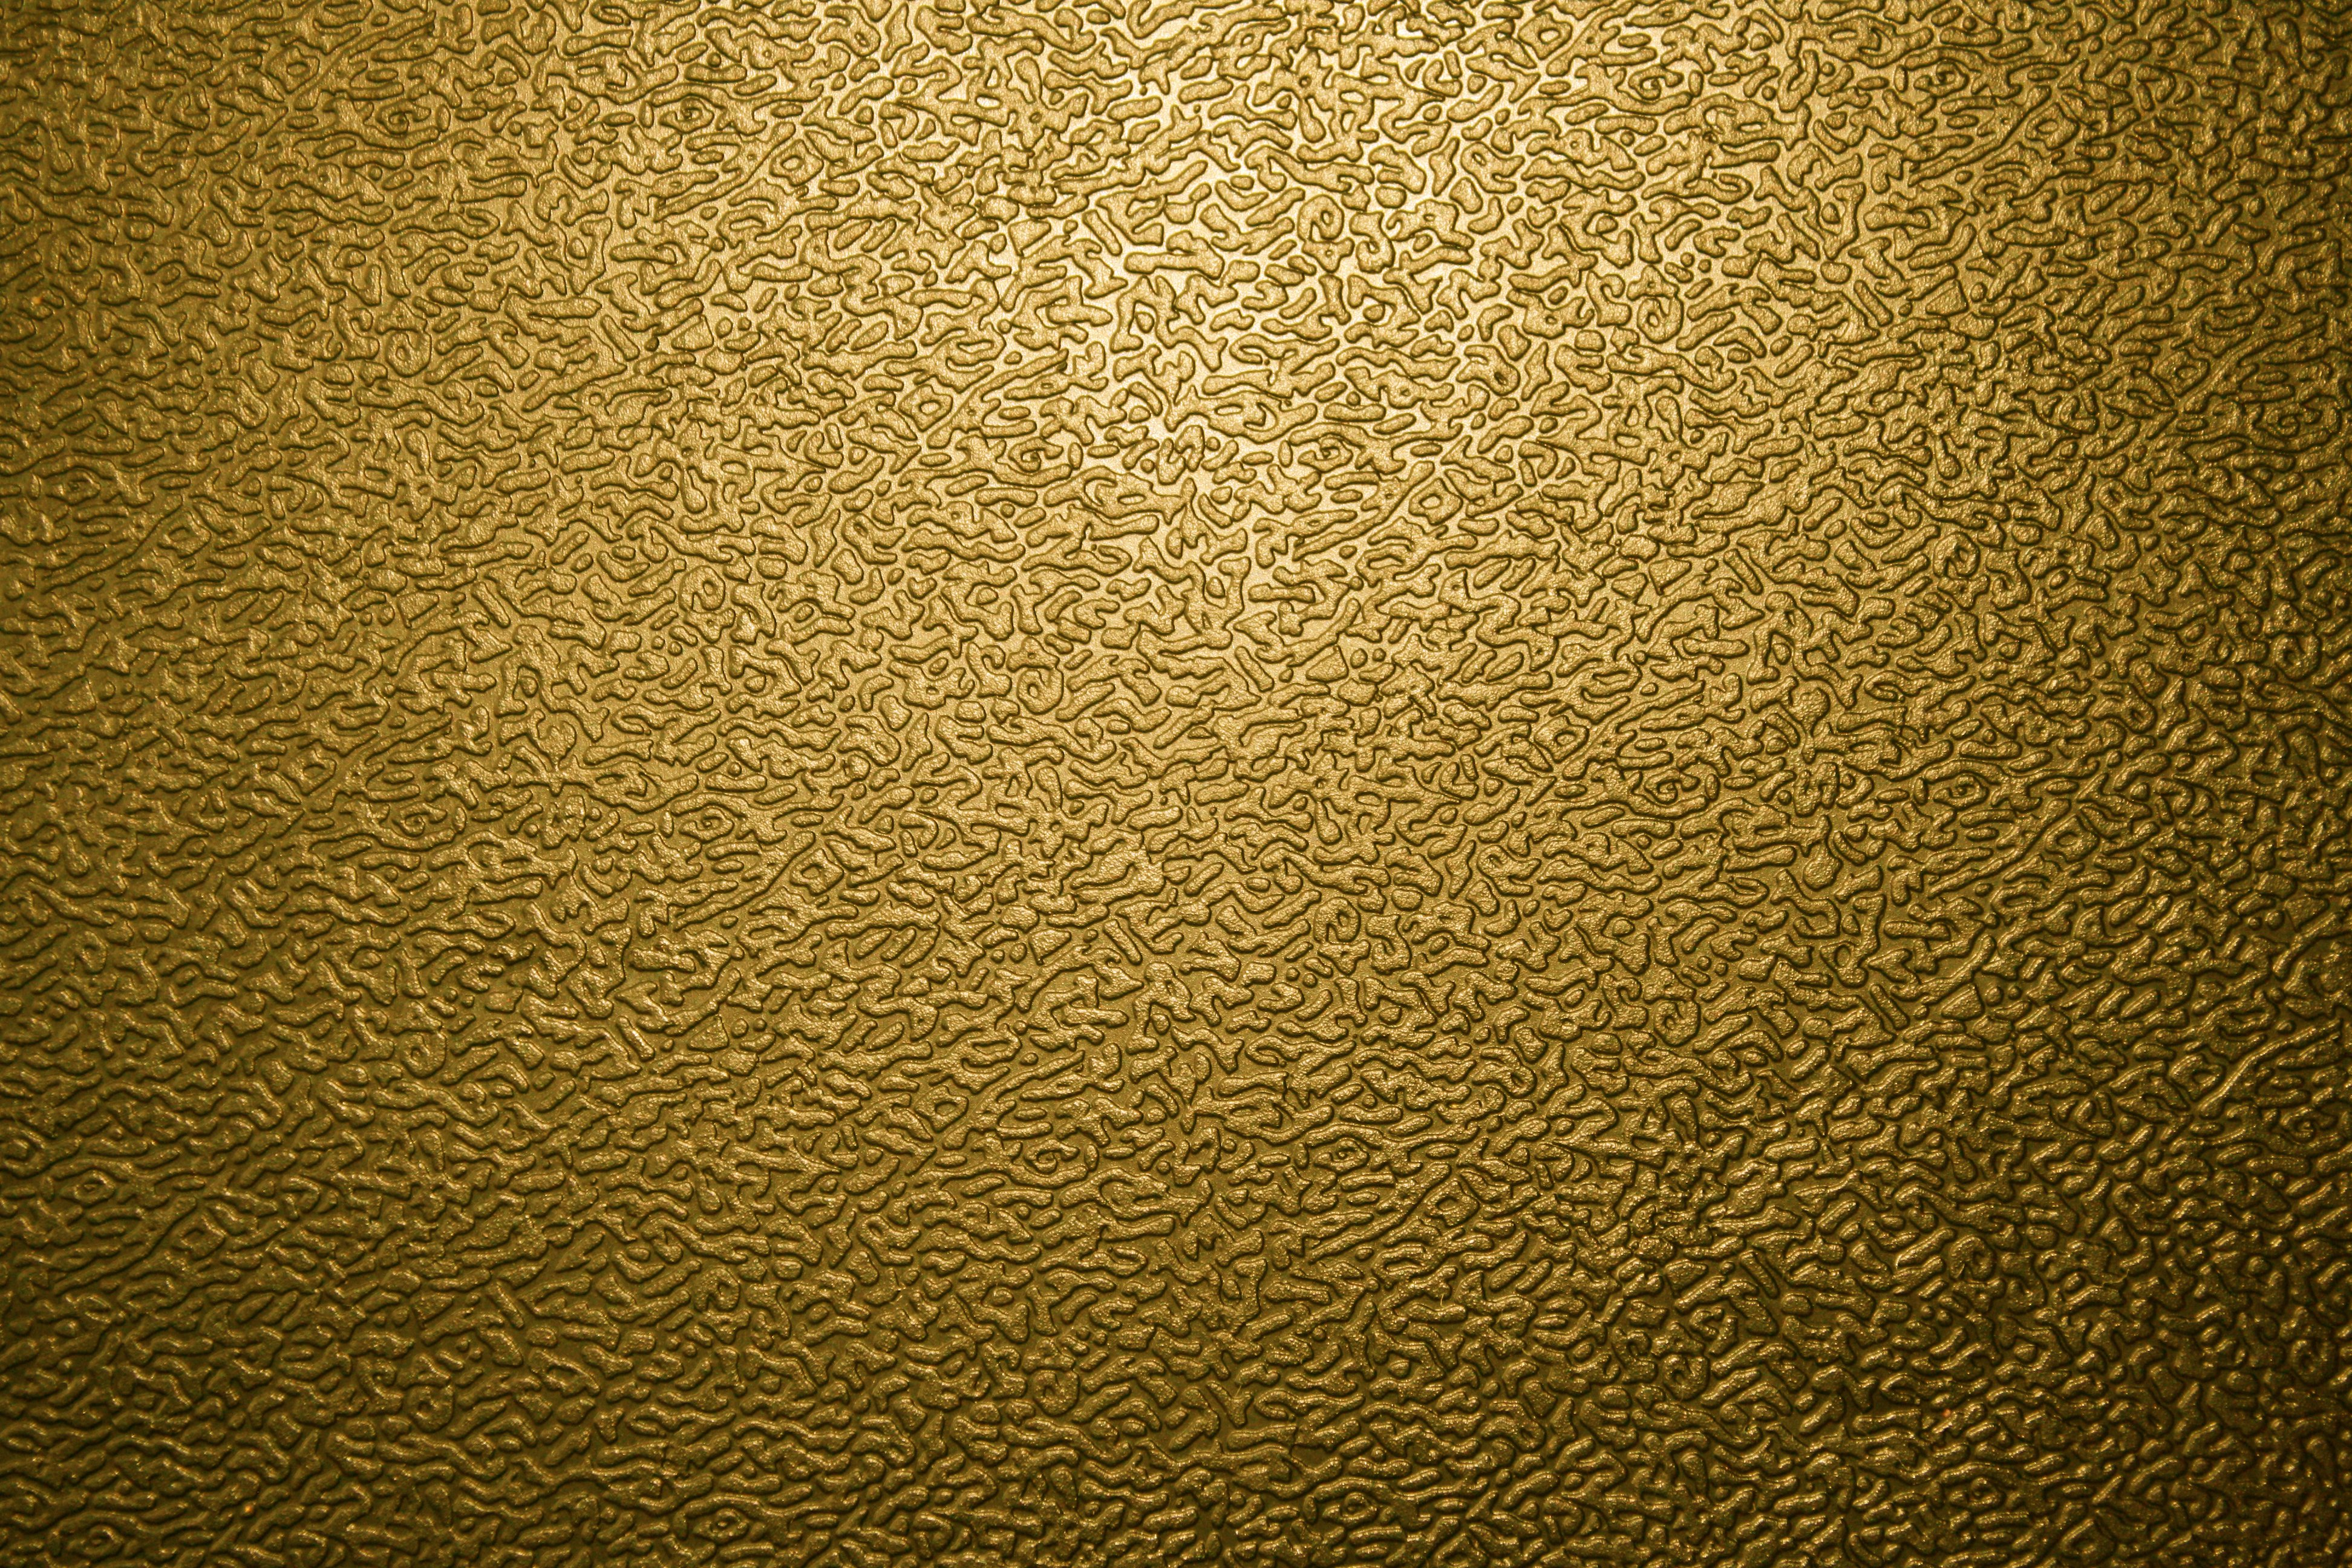 Gold Wallpapers texture